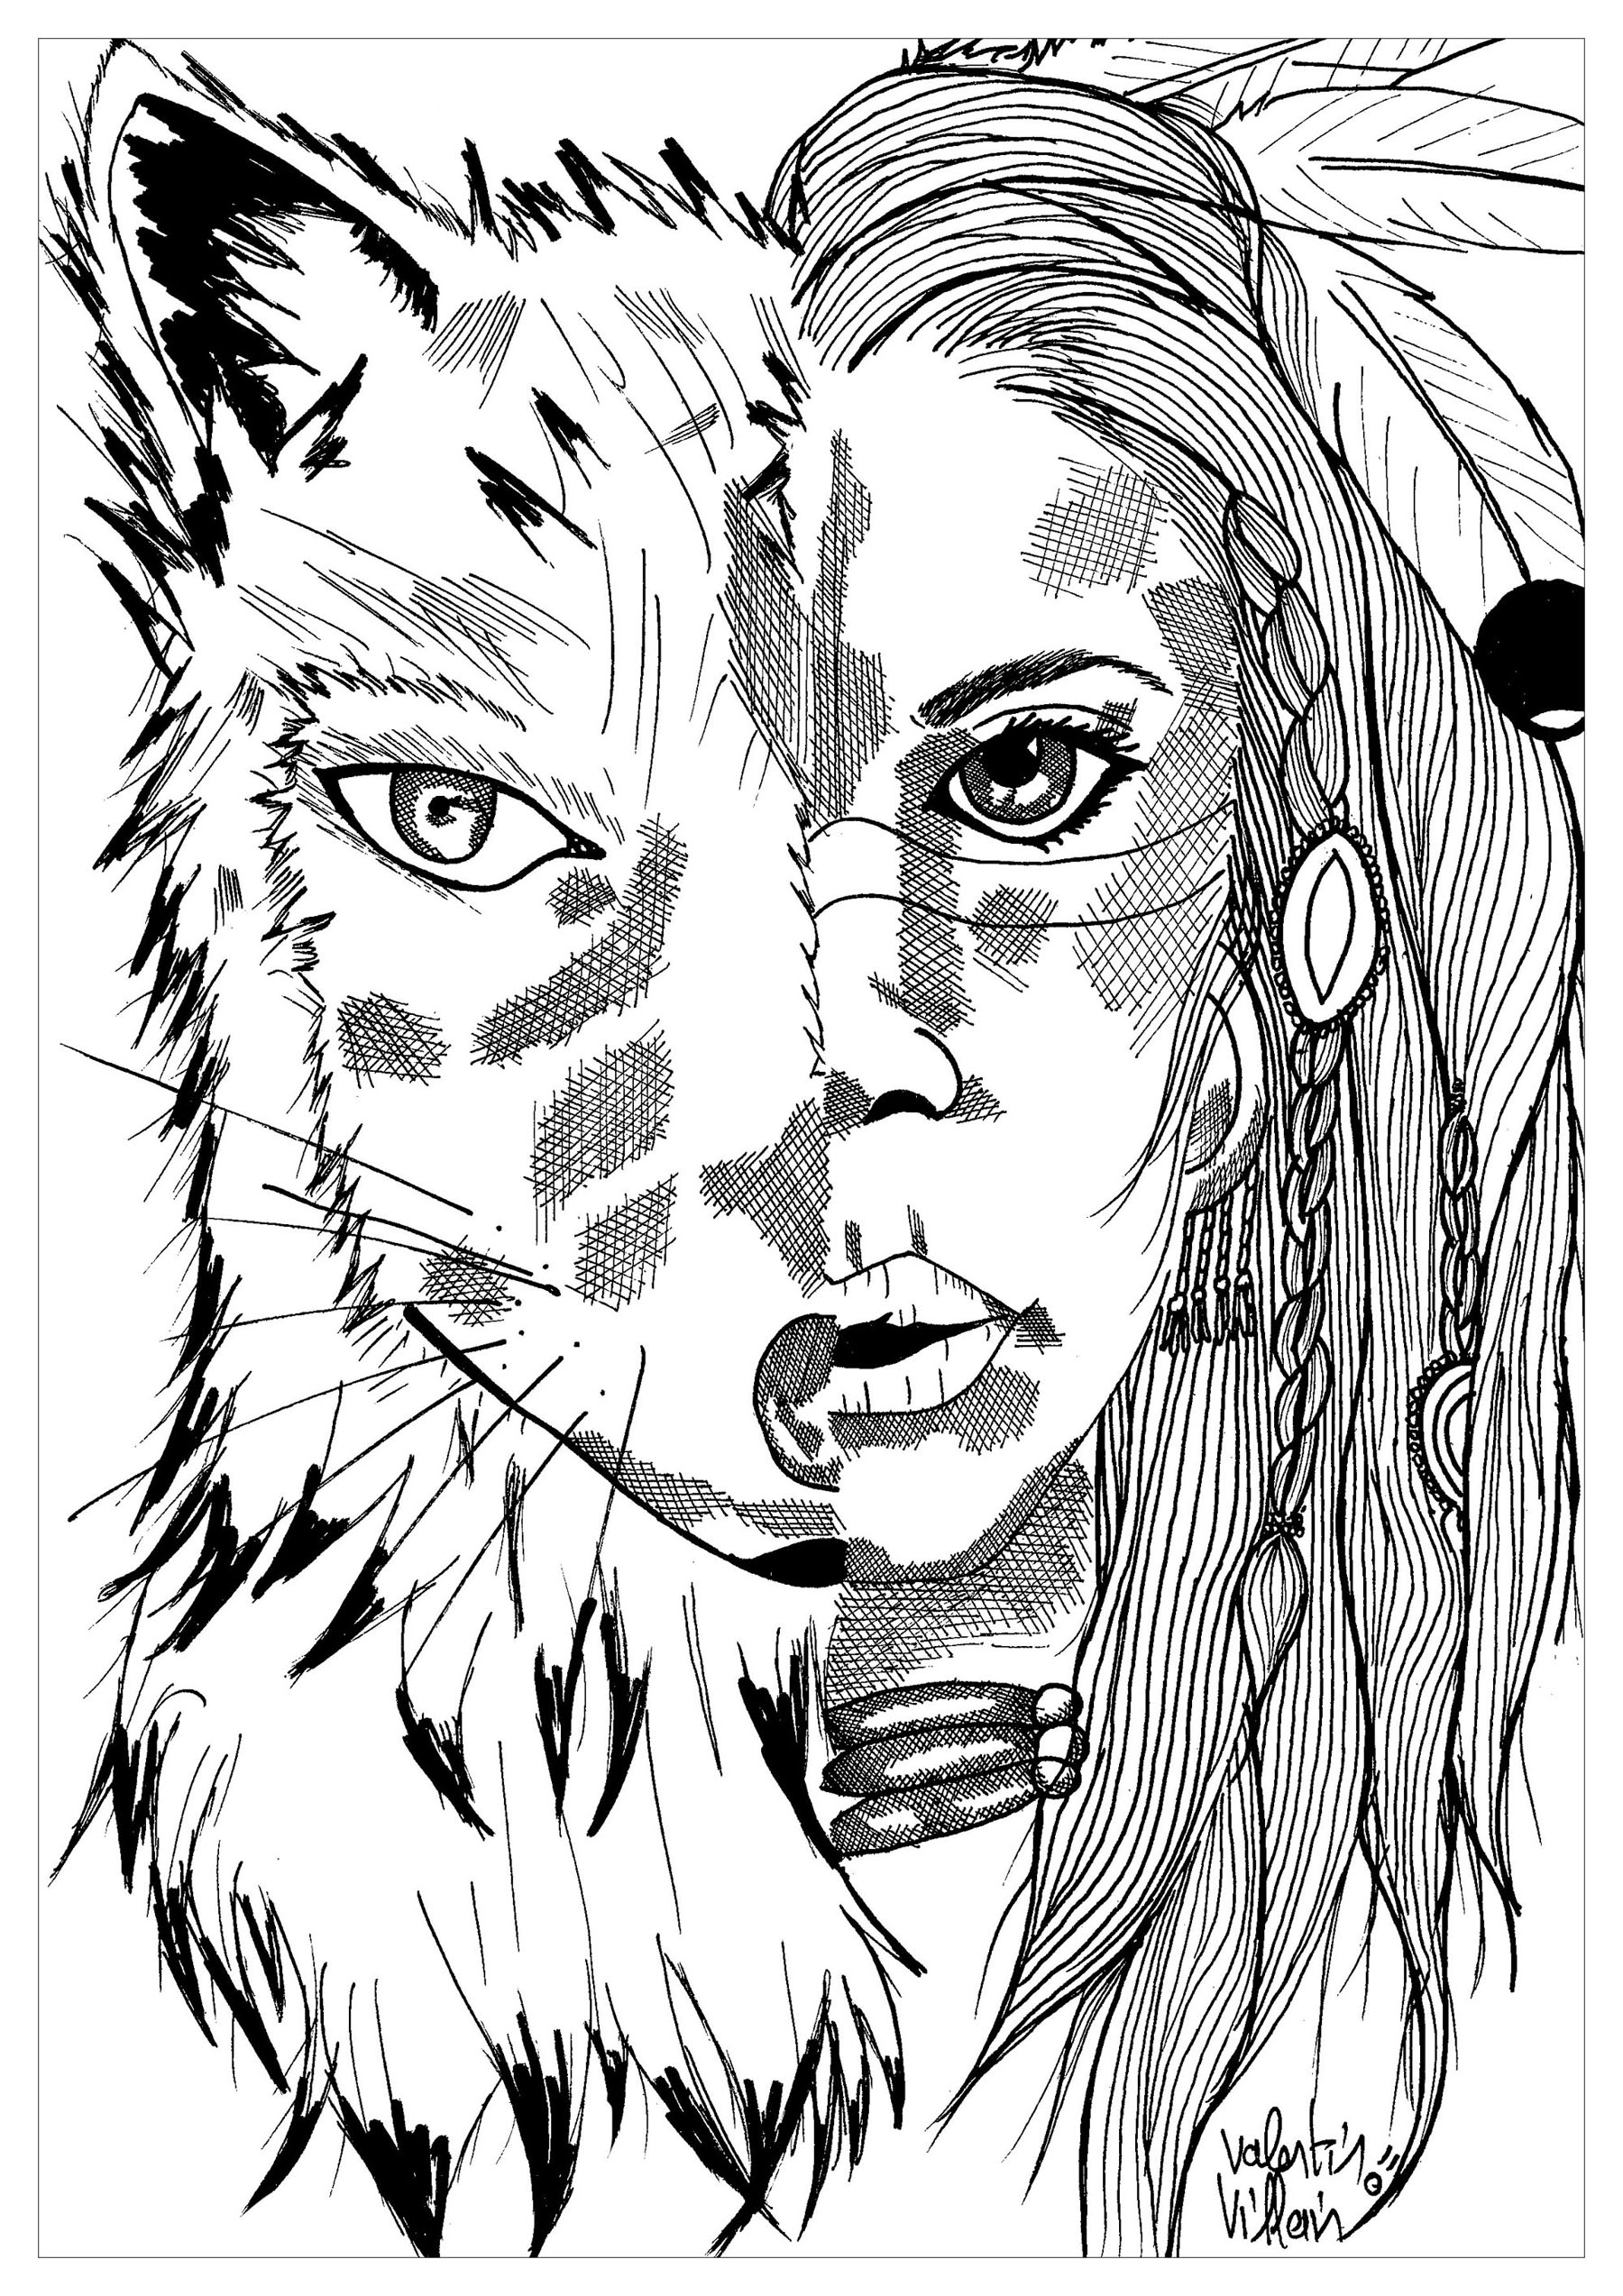 Uncategorized Native American Indian Coloring Pages indian wolf par valentin native american coloring pages for of an and a from the gallery americans artist